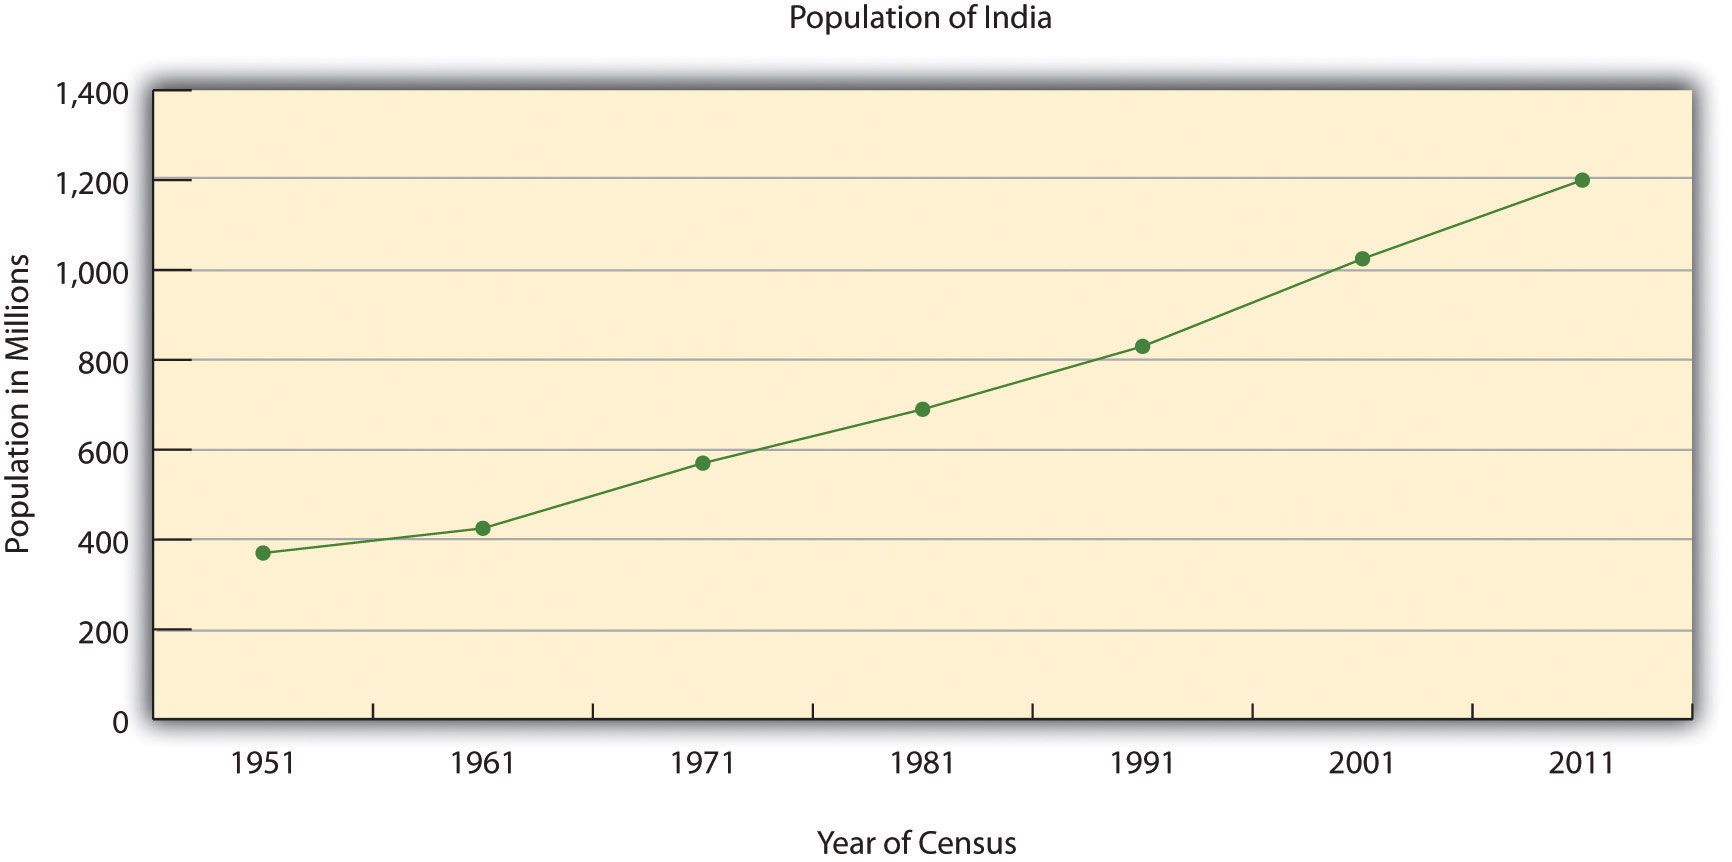 the population growth rate in india